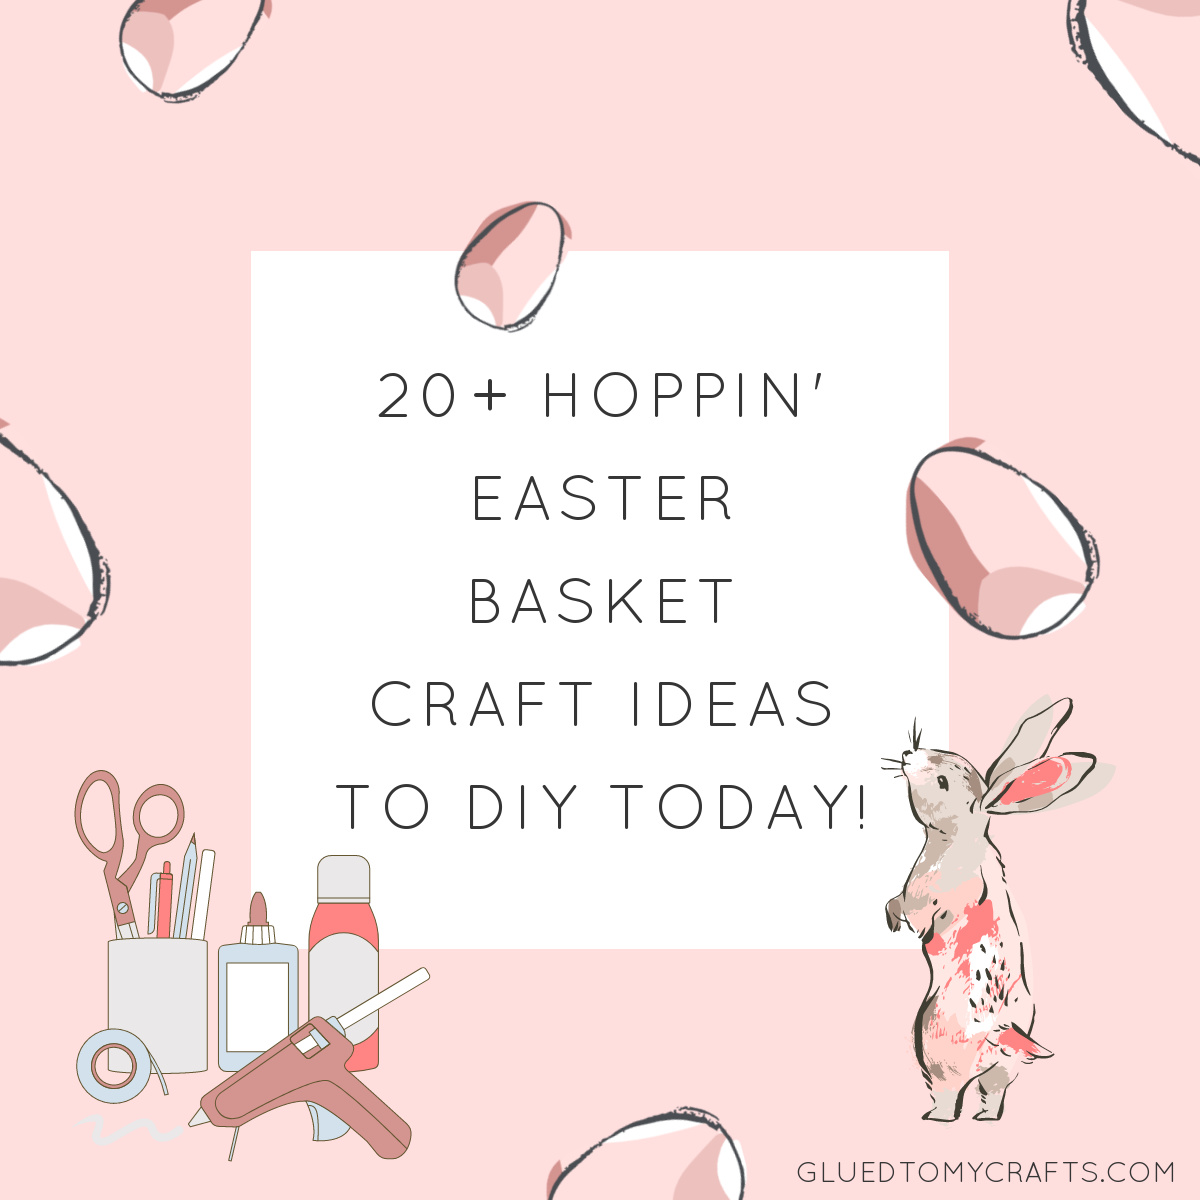 20+ Hoppin' Easter Basket Craft Ideas For You To DIY Today!